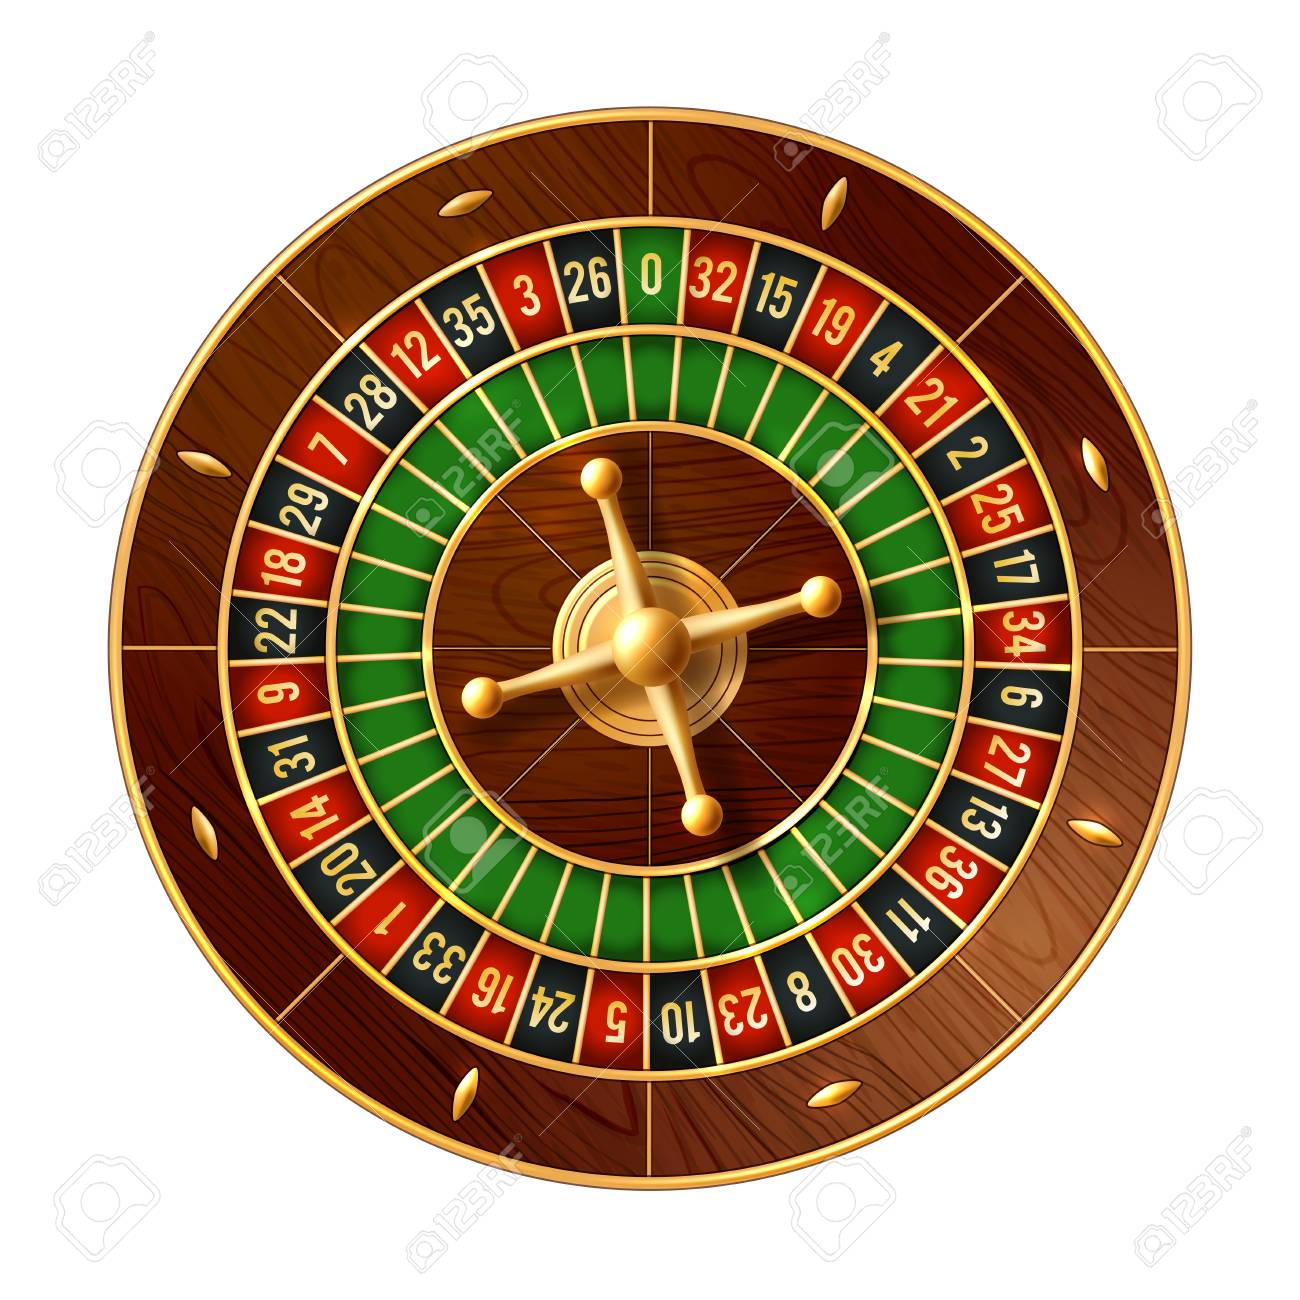 Casino Roulette Wheel 3d Vector Of Gamble Game Royalty Free Cliparts Vectors And Stock Illustration Image 104013924